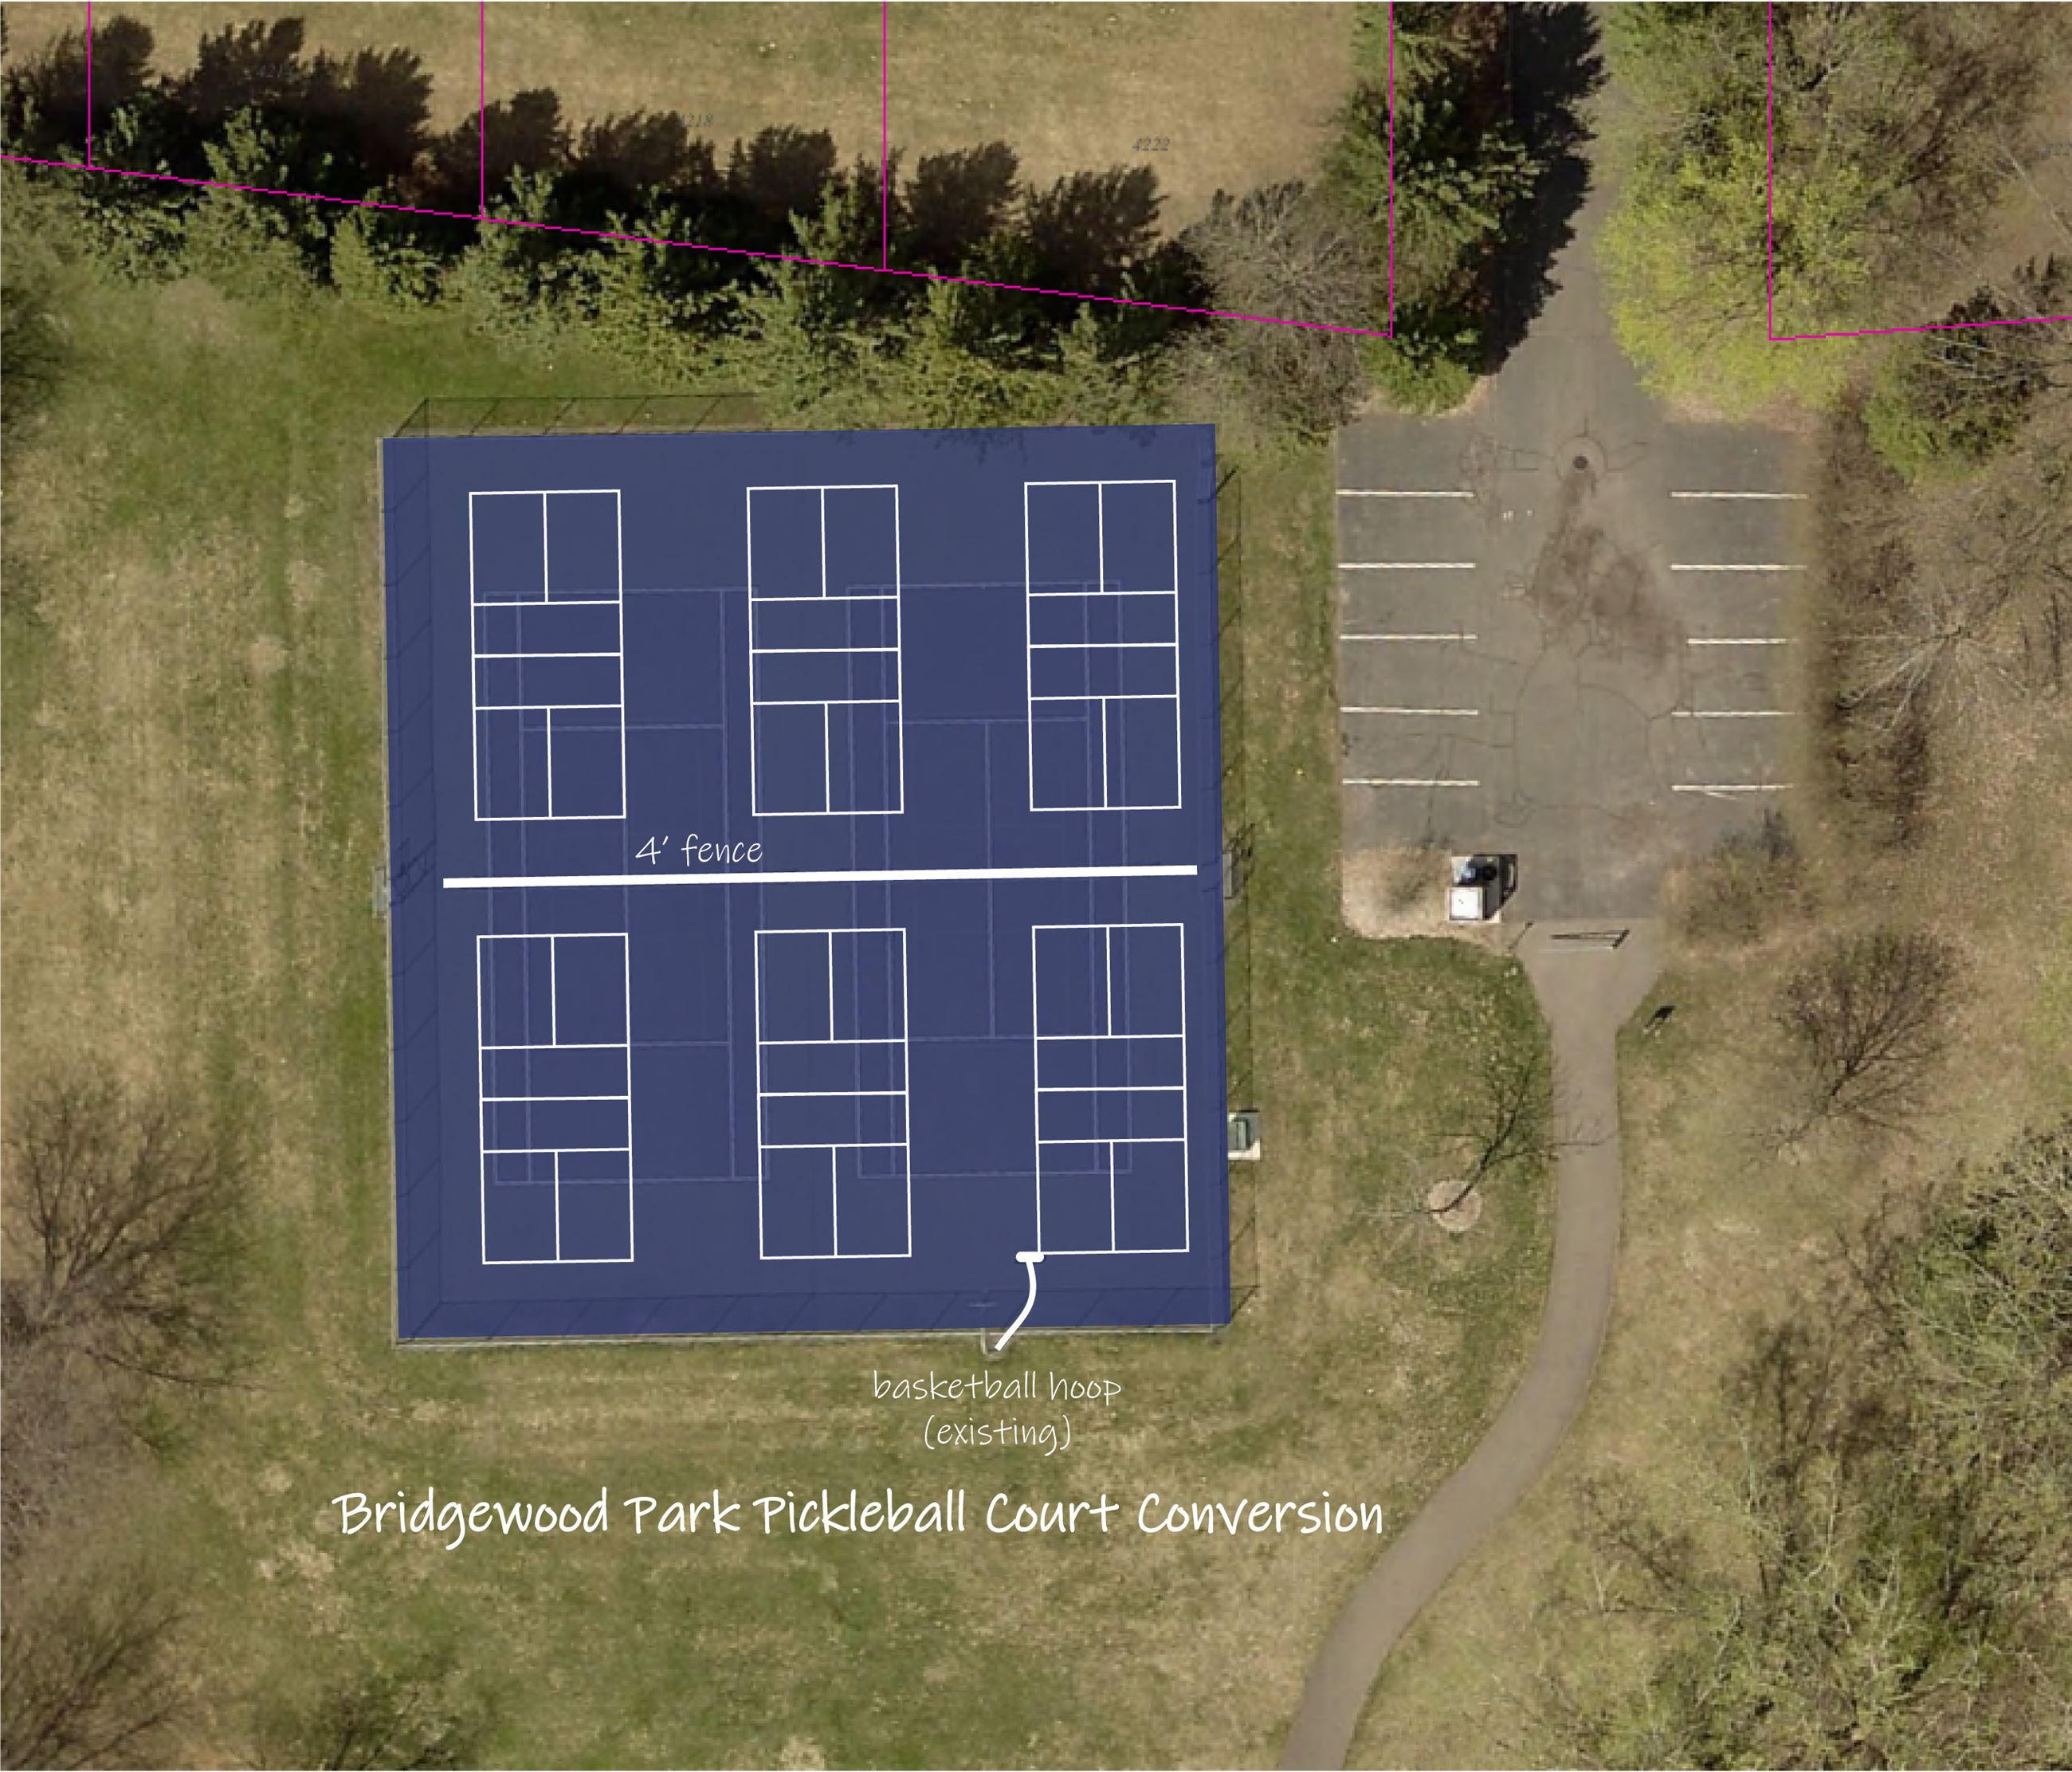 Representation of Bridgewood Pickleball Court conversion from tennis courts